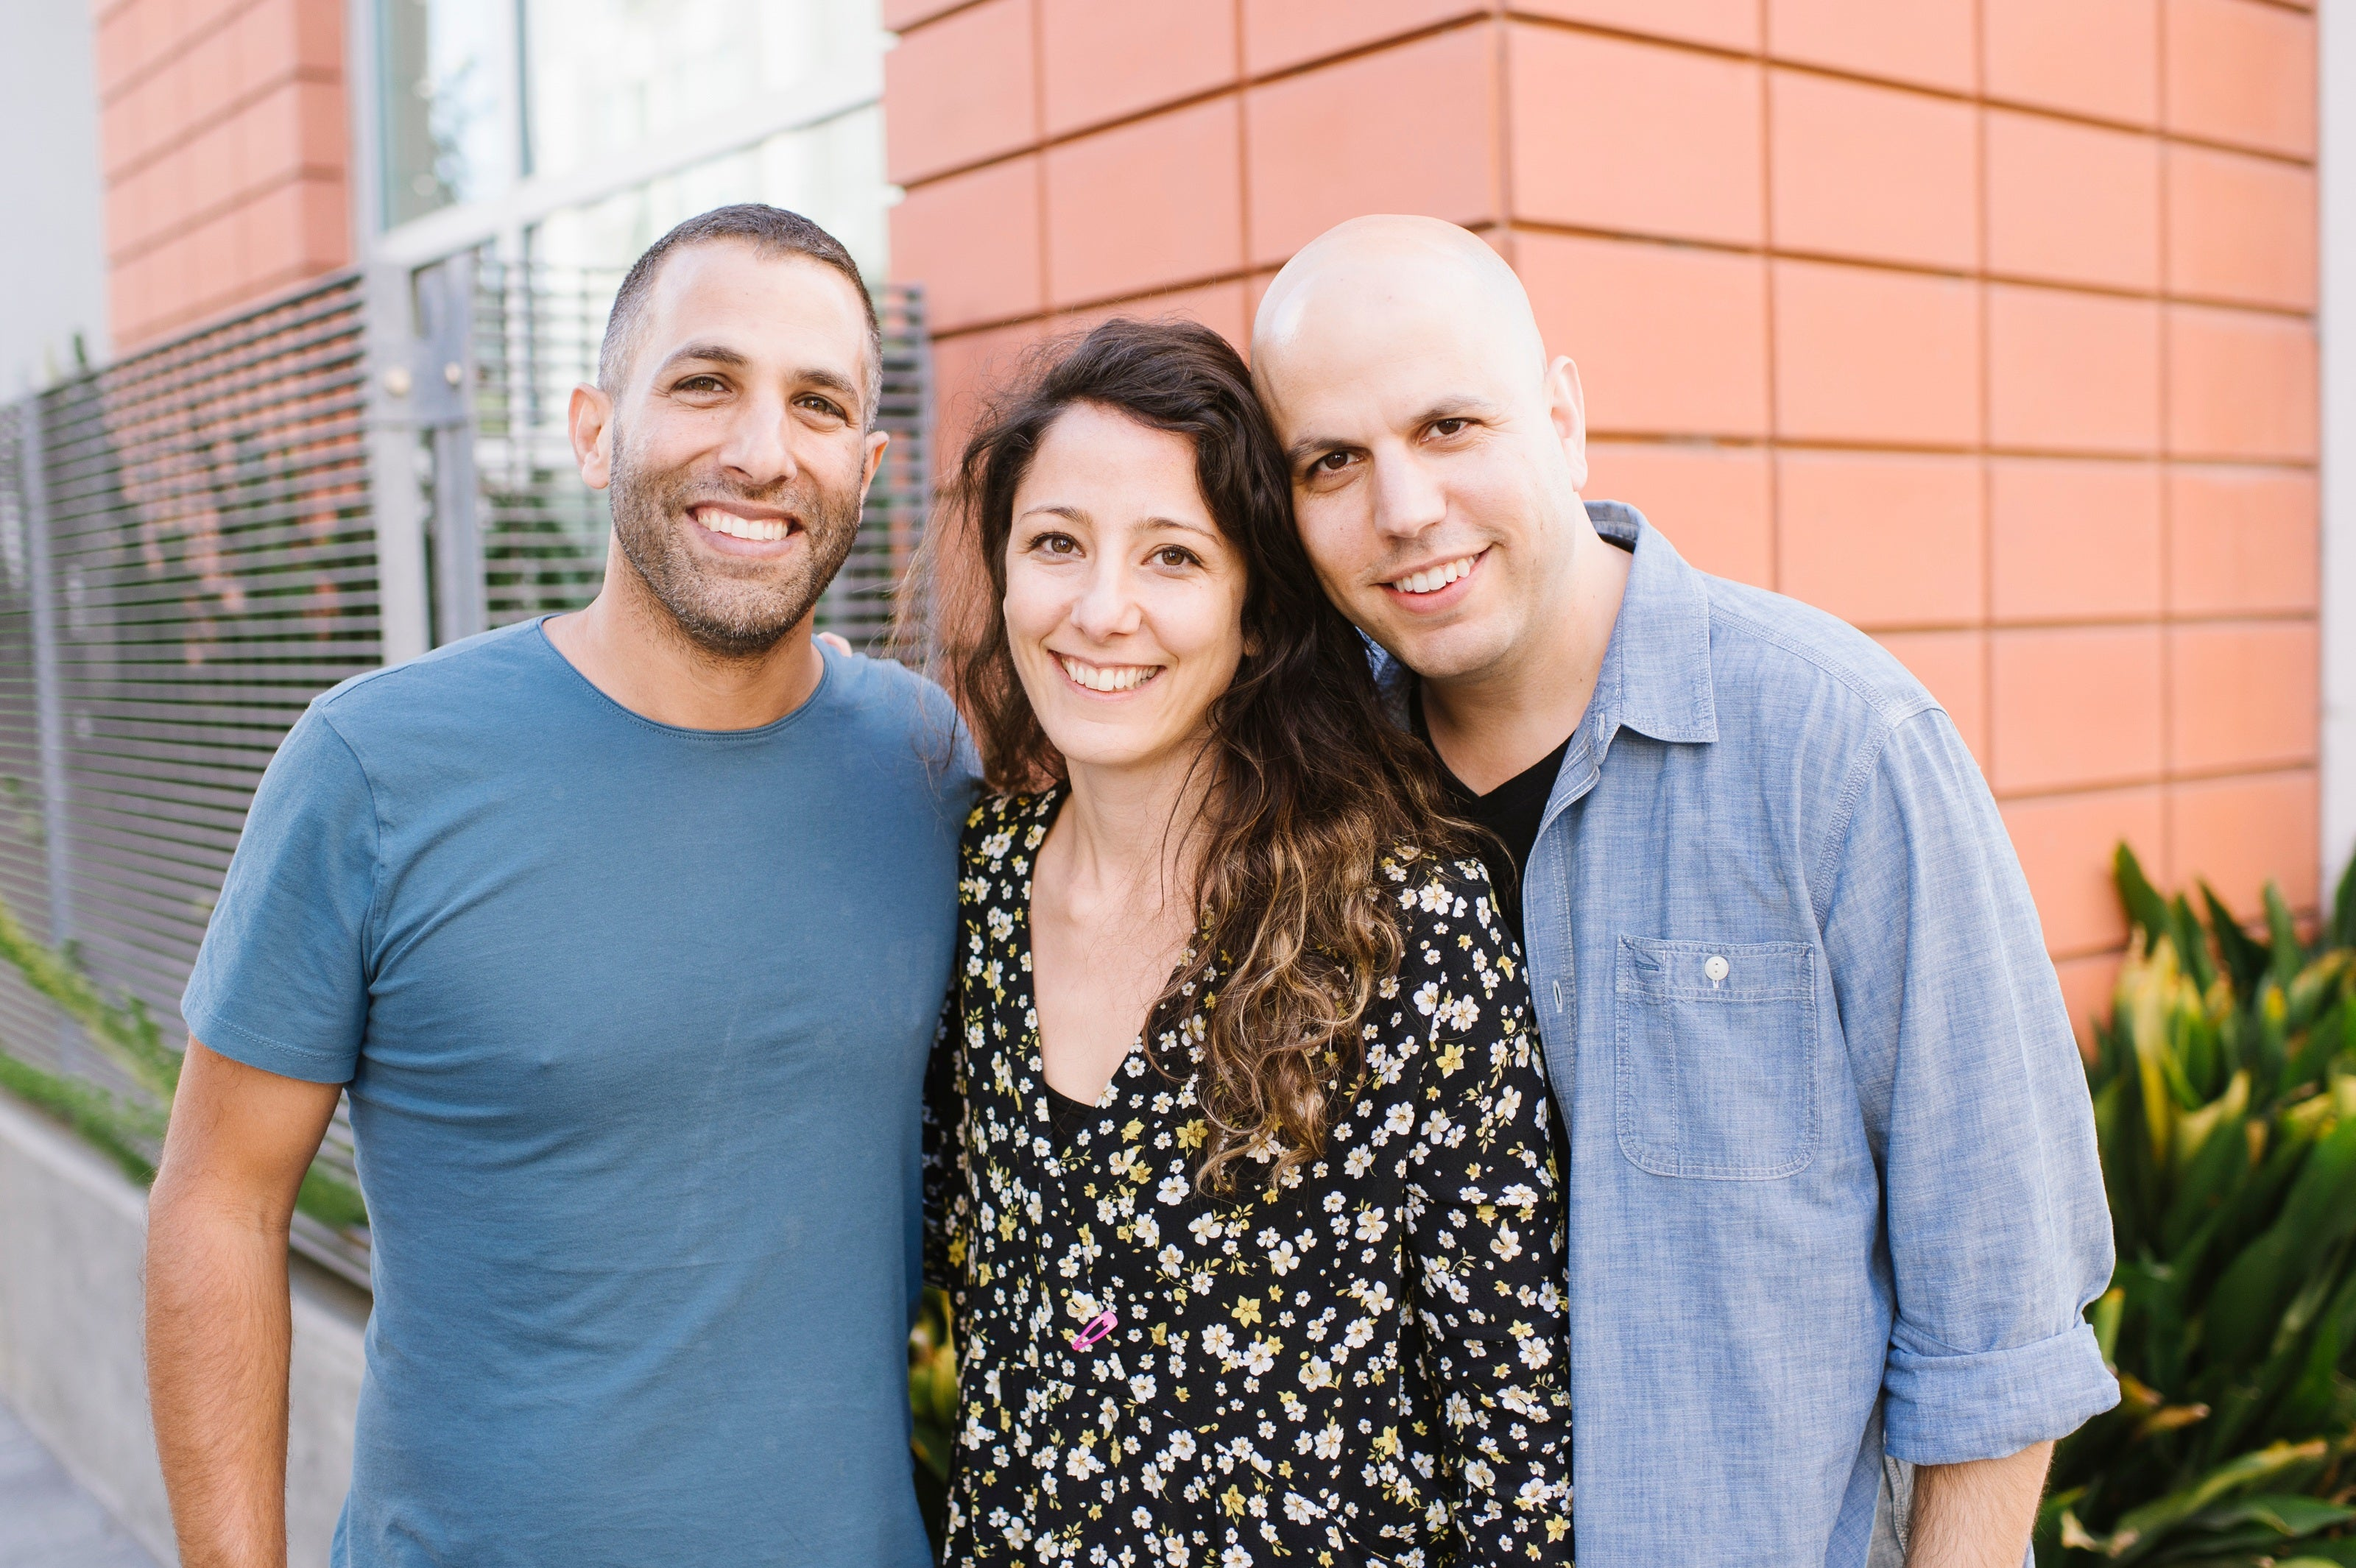 A portrait of HoneyBook founders